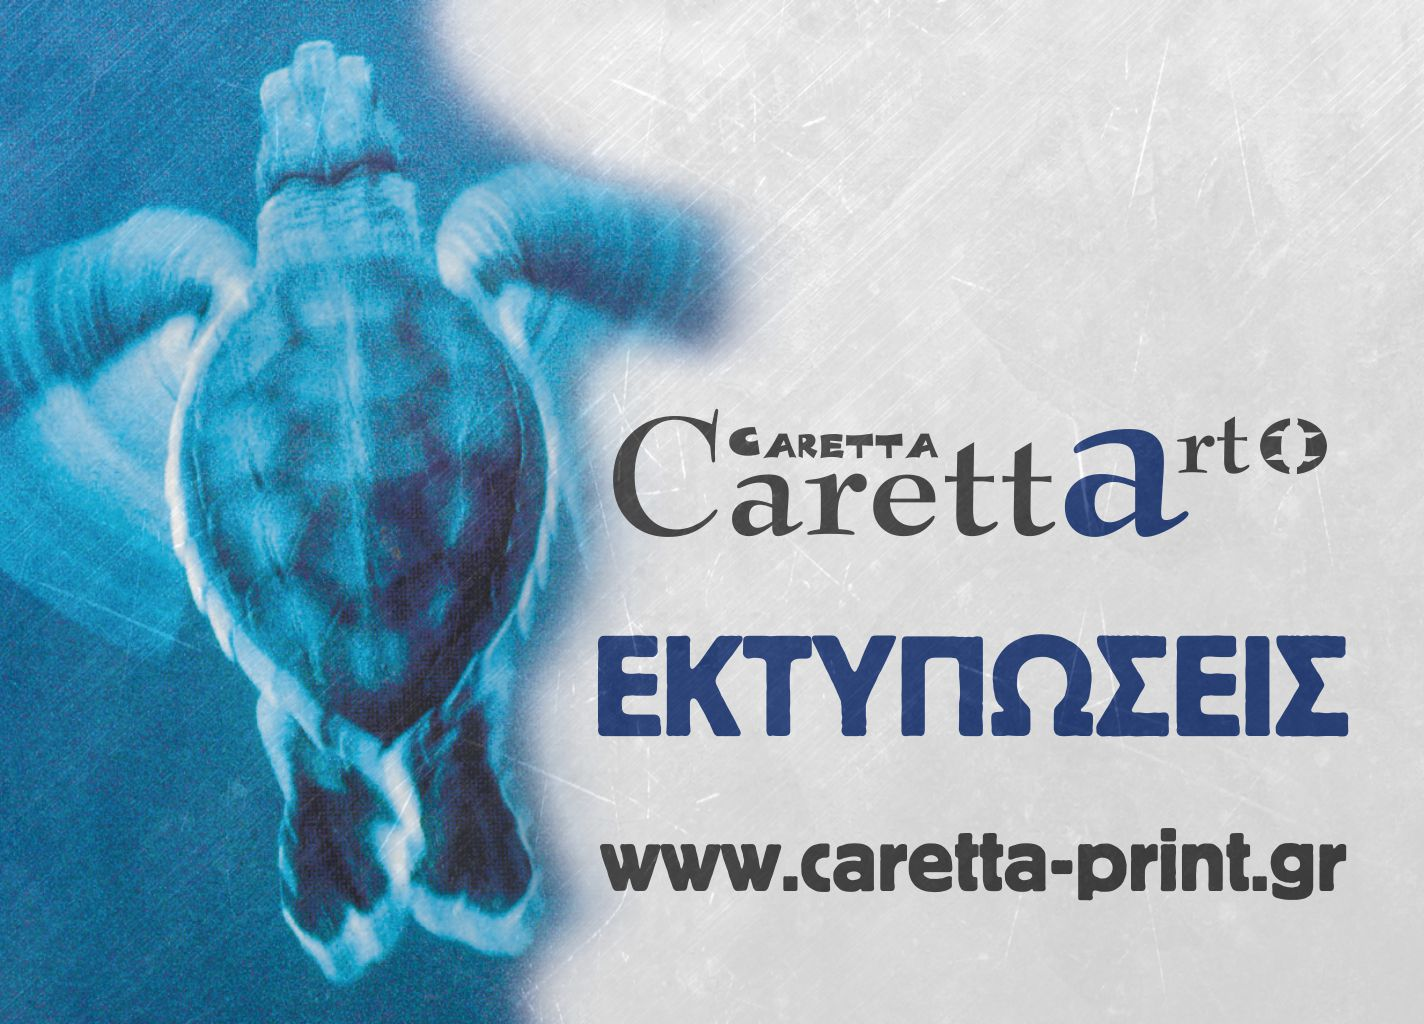 CARETTA ART